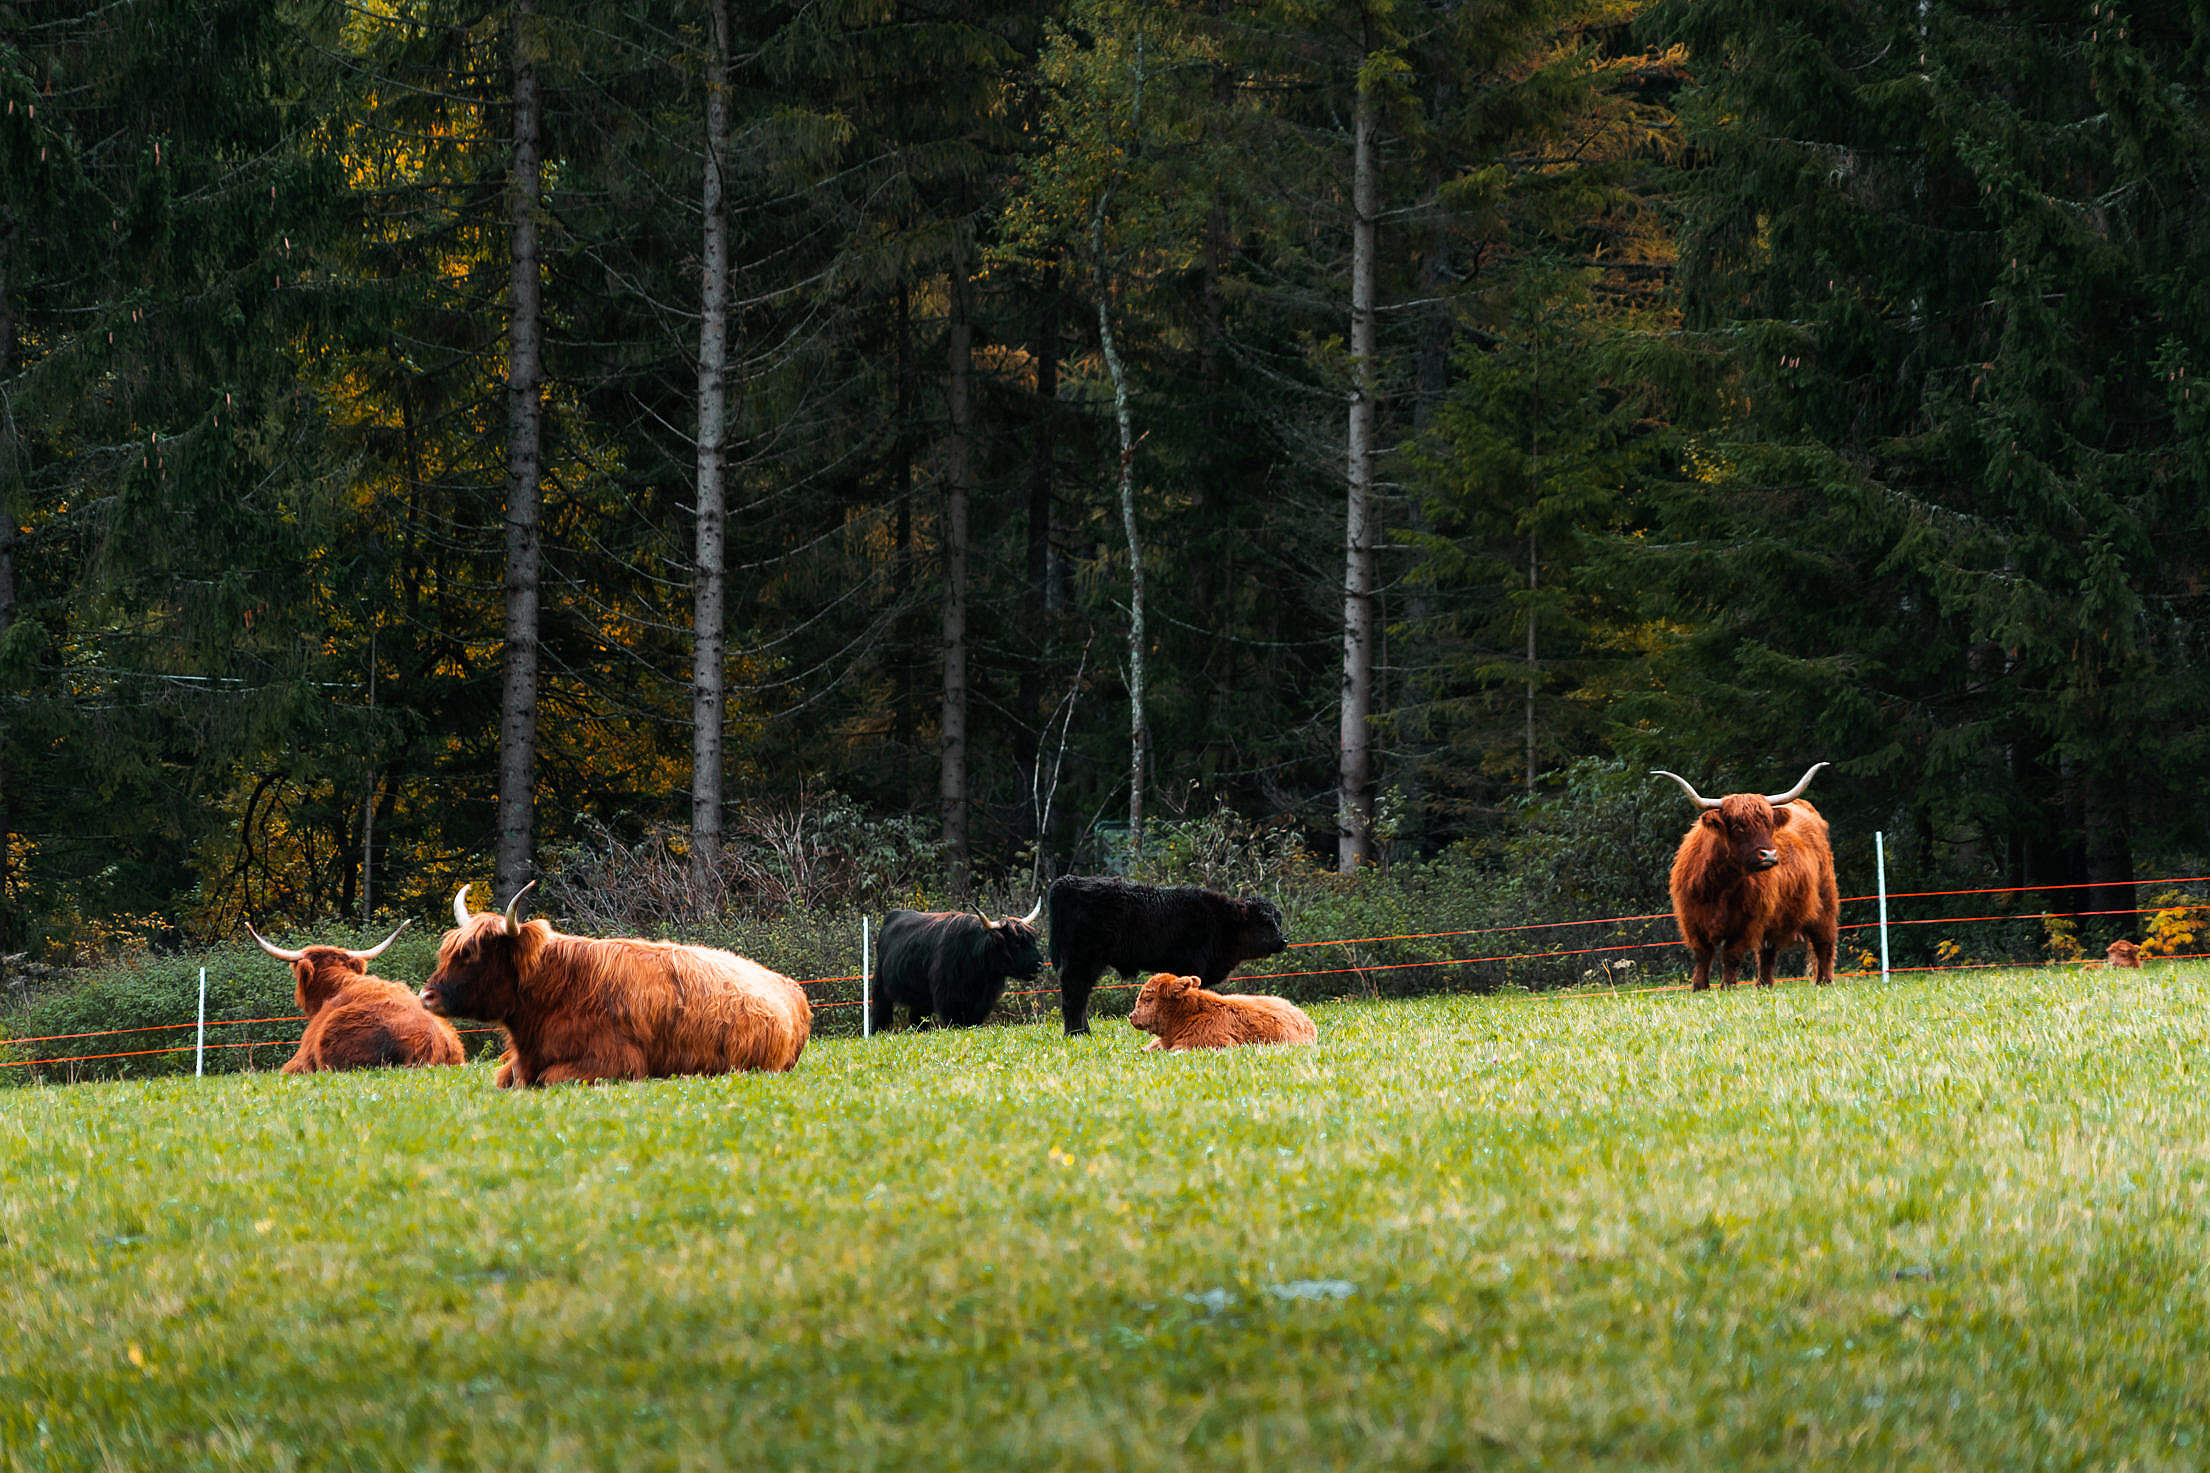 Resting Bulls and Cows on The Grass Free Stock Photo